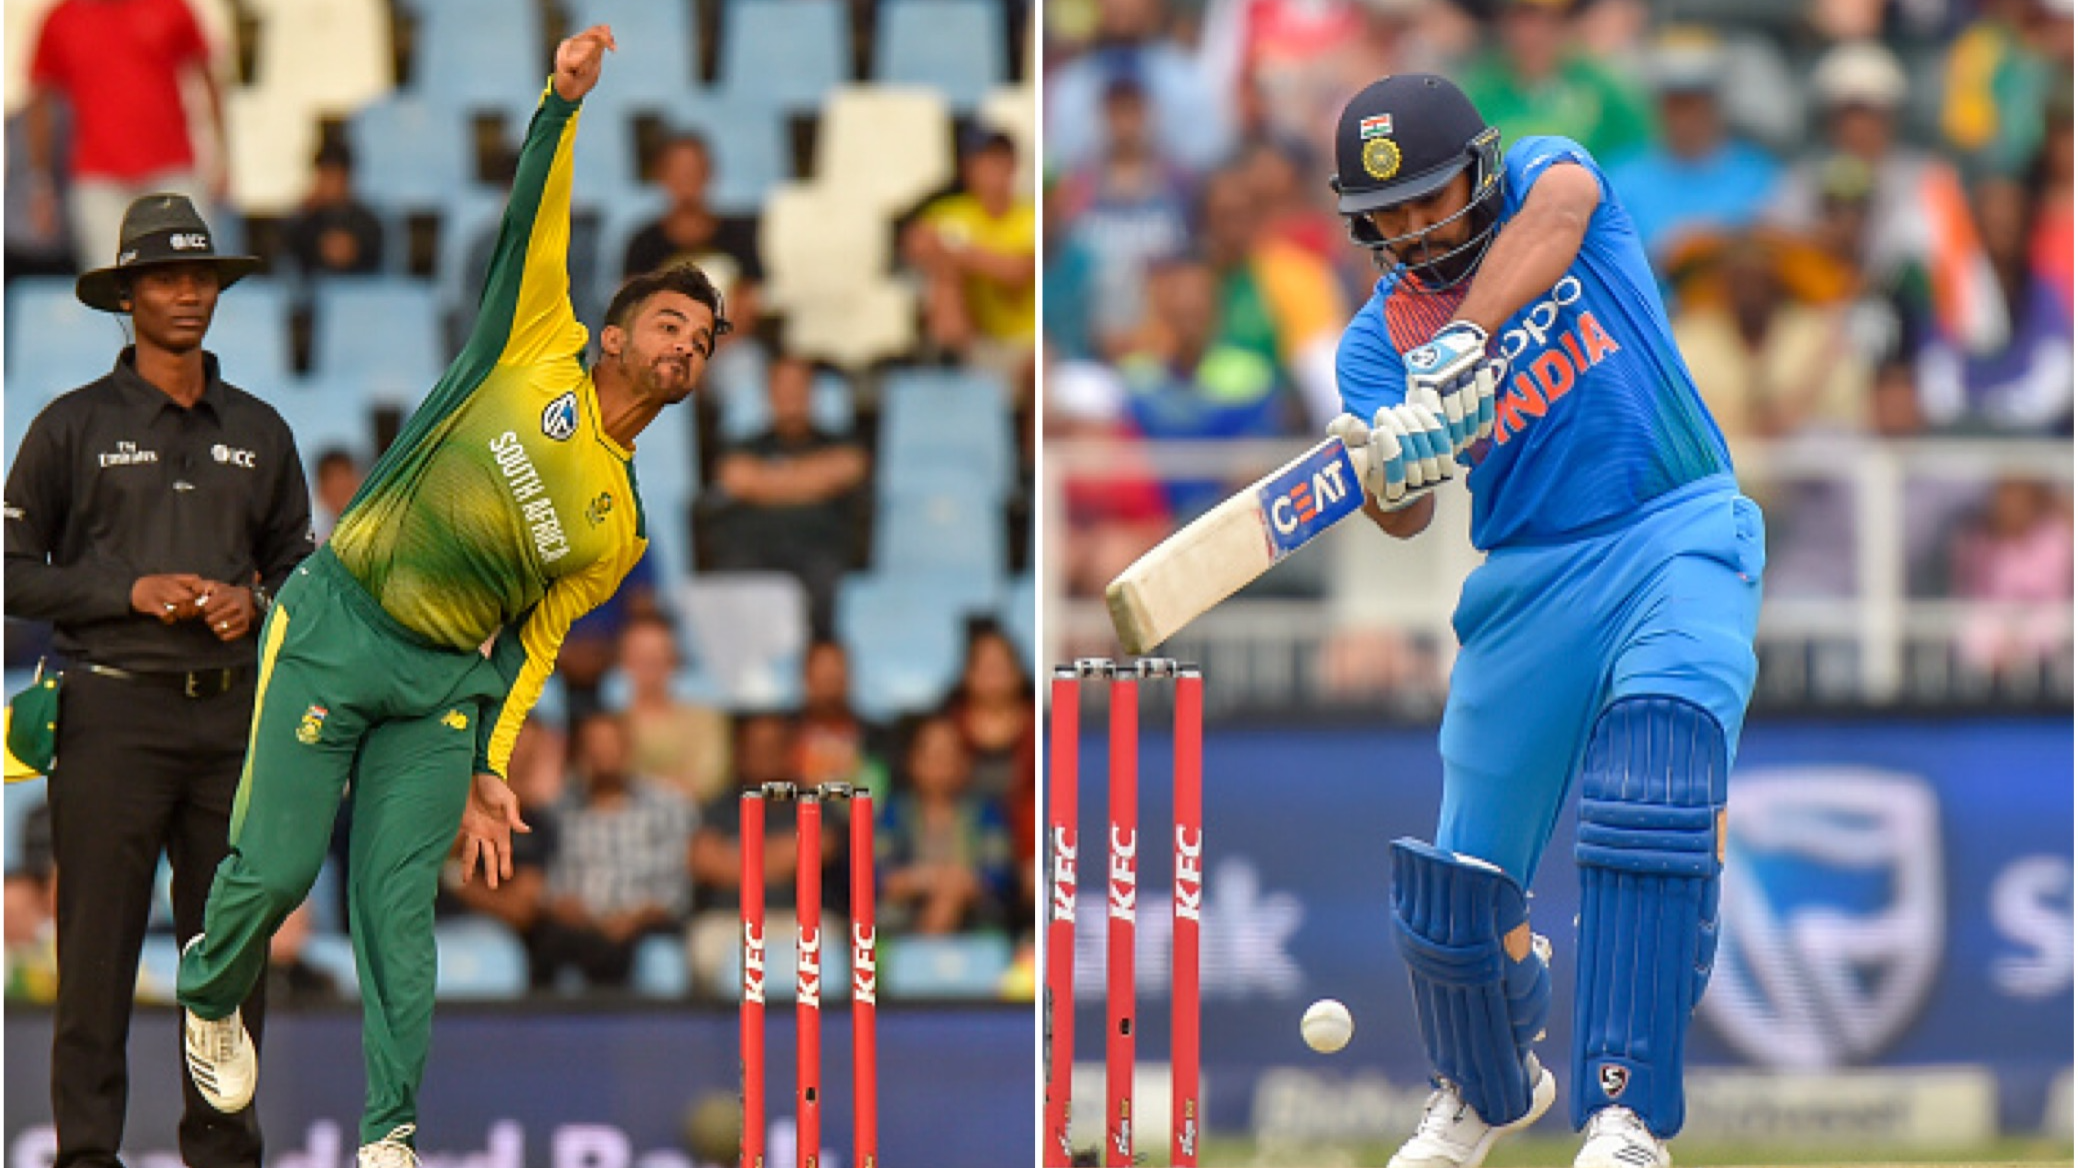 SA v IND 2018: 3rd T20I – India and South Africa battle for T20I supremacy for the perfect end to a long rivalry